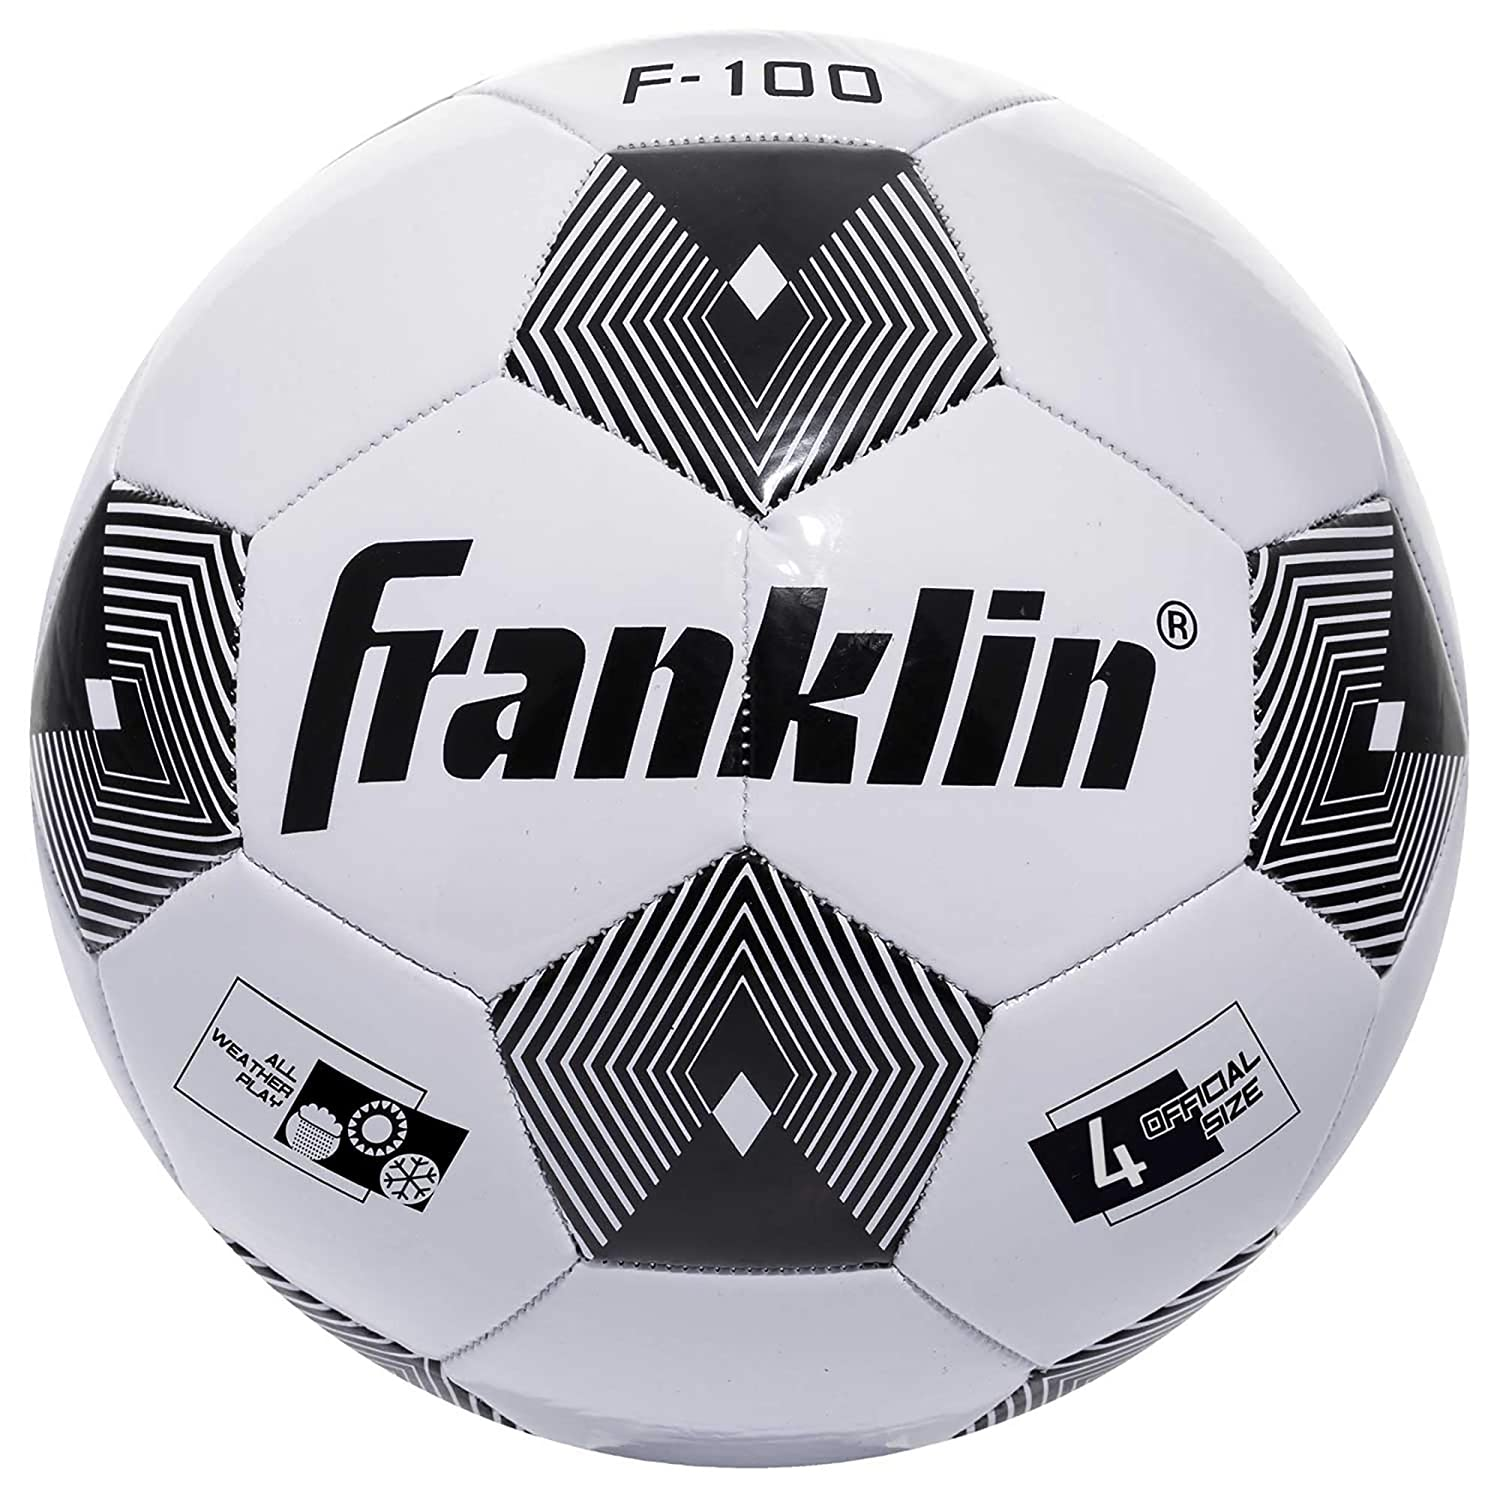 30207X Deflated with Pump Inc Franklin Sports Competition F-100 Soccer Ball 12 Youth and Adult Soccer Ball Available In Size 3 Size 4 and Size 5 Available As Individual Ball or Bulk